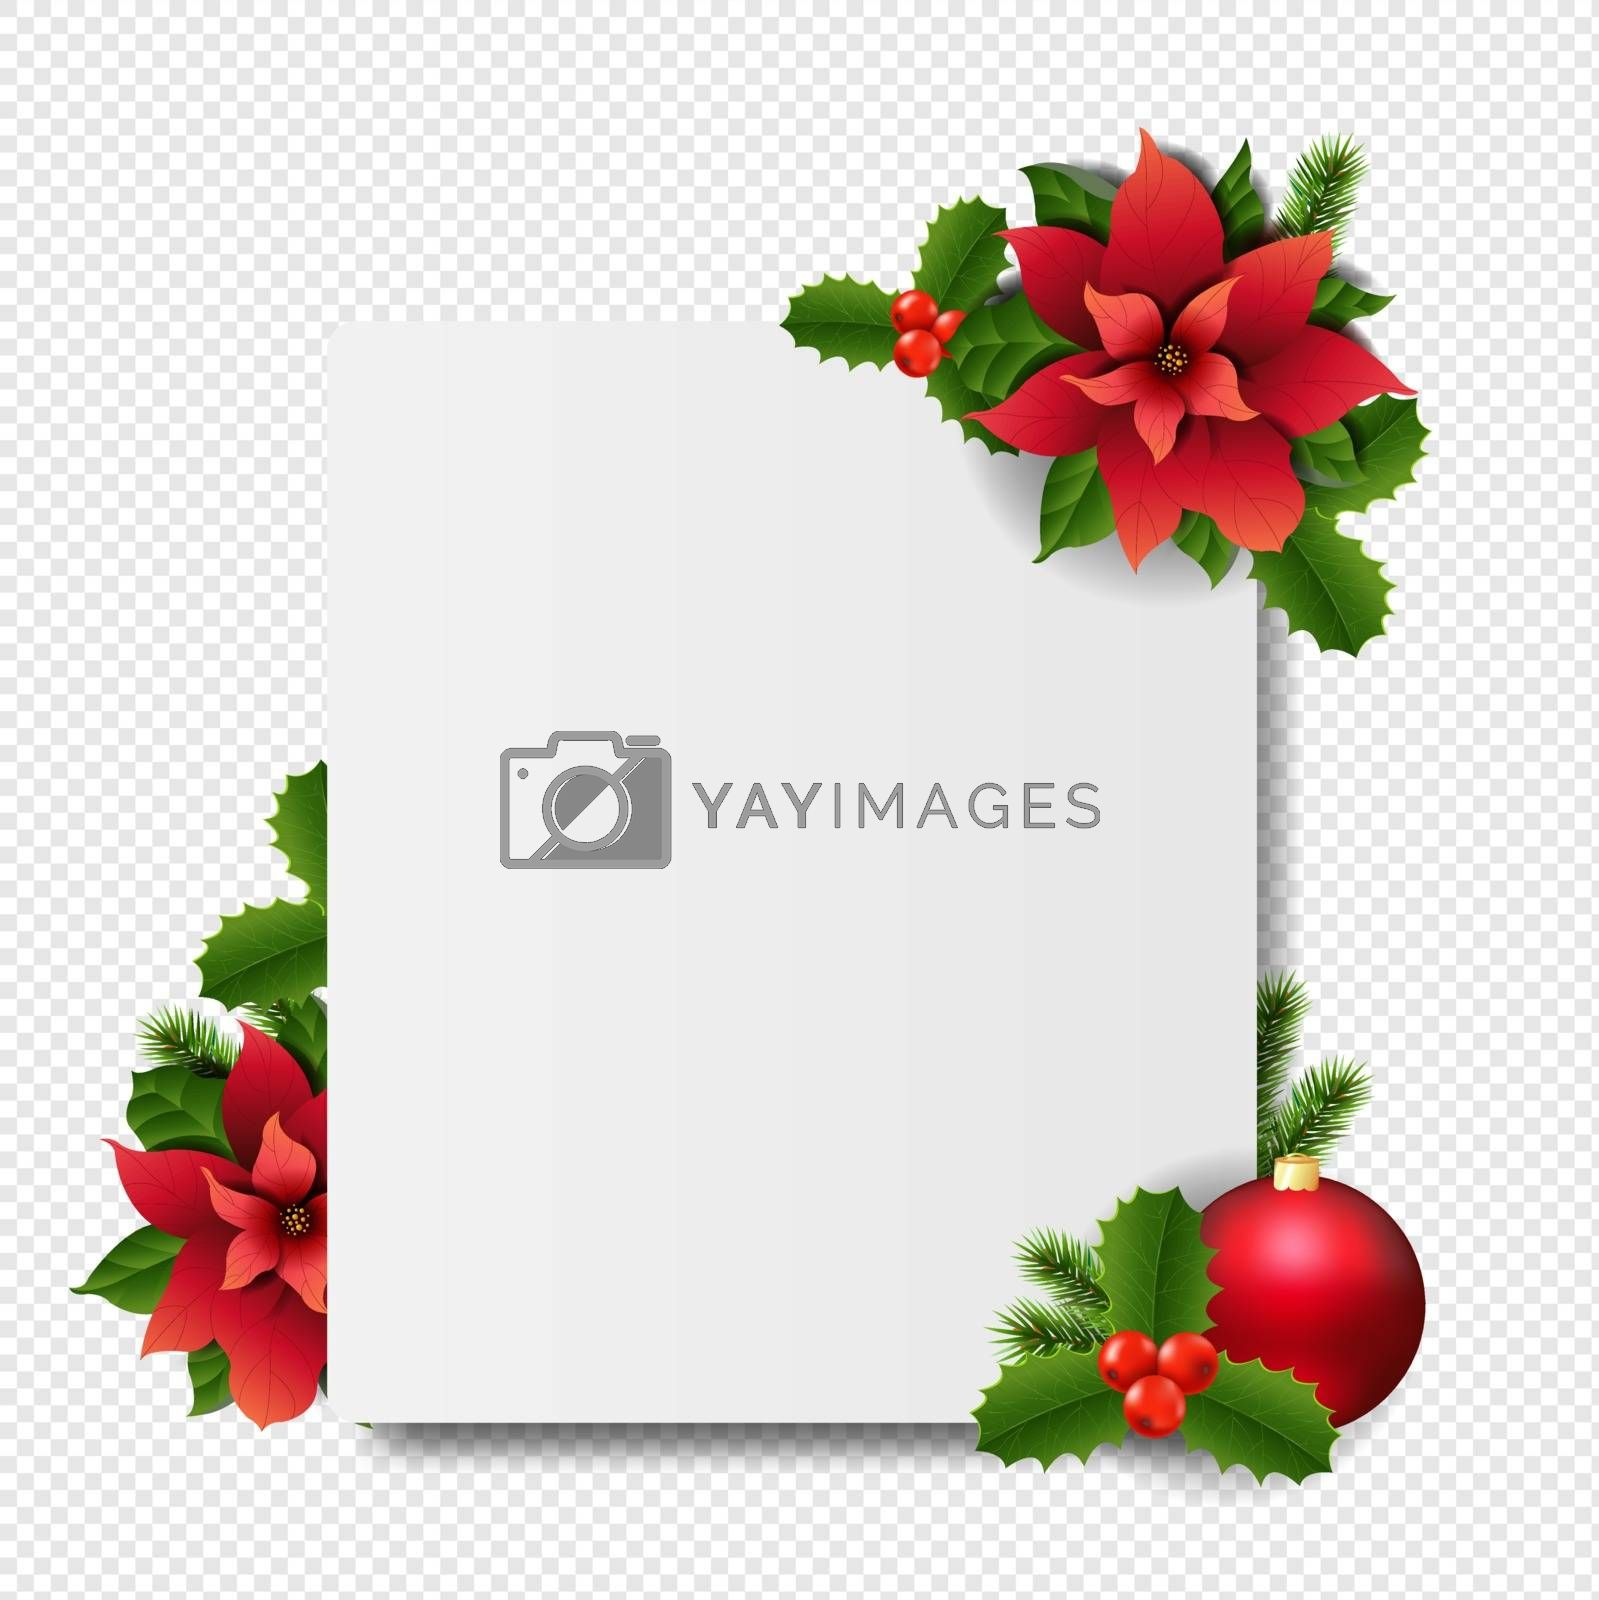 Banner With Red Christmas Poinsettia transparent Background With Gradient Mesh, Vector Illustration